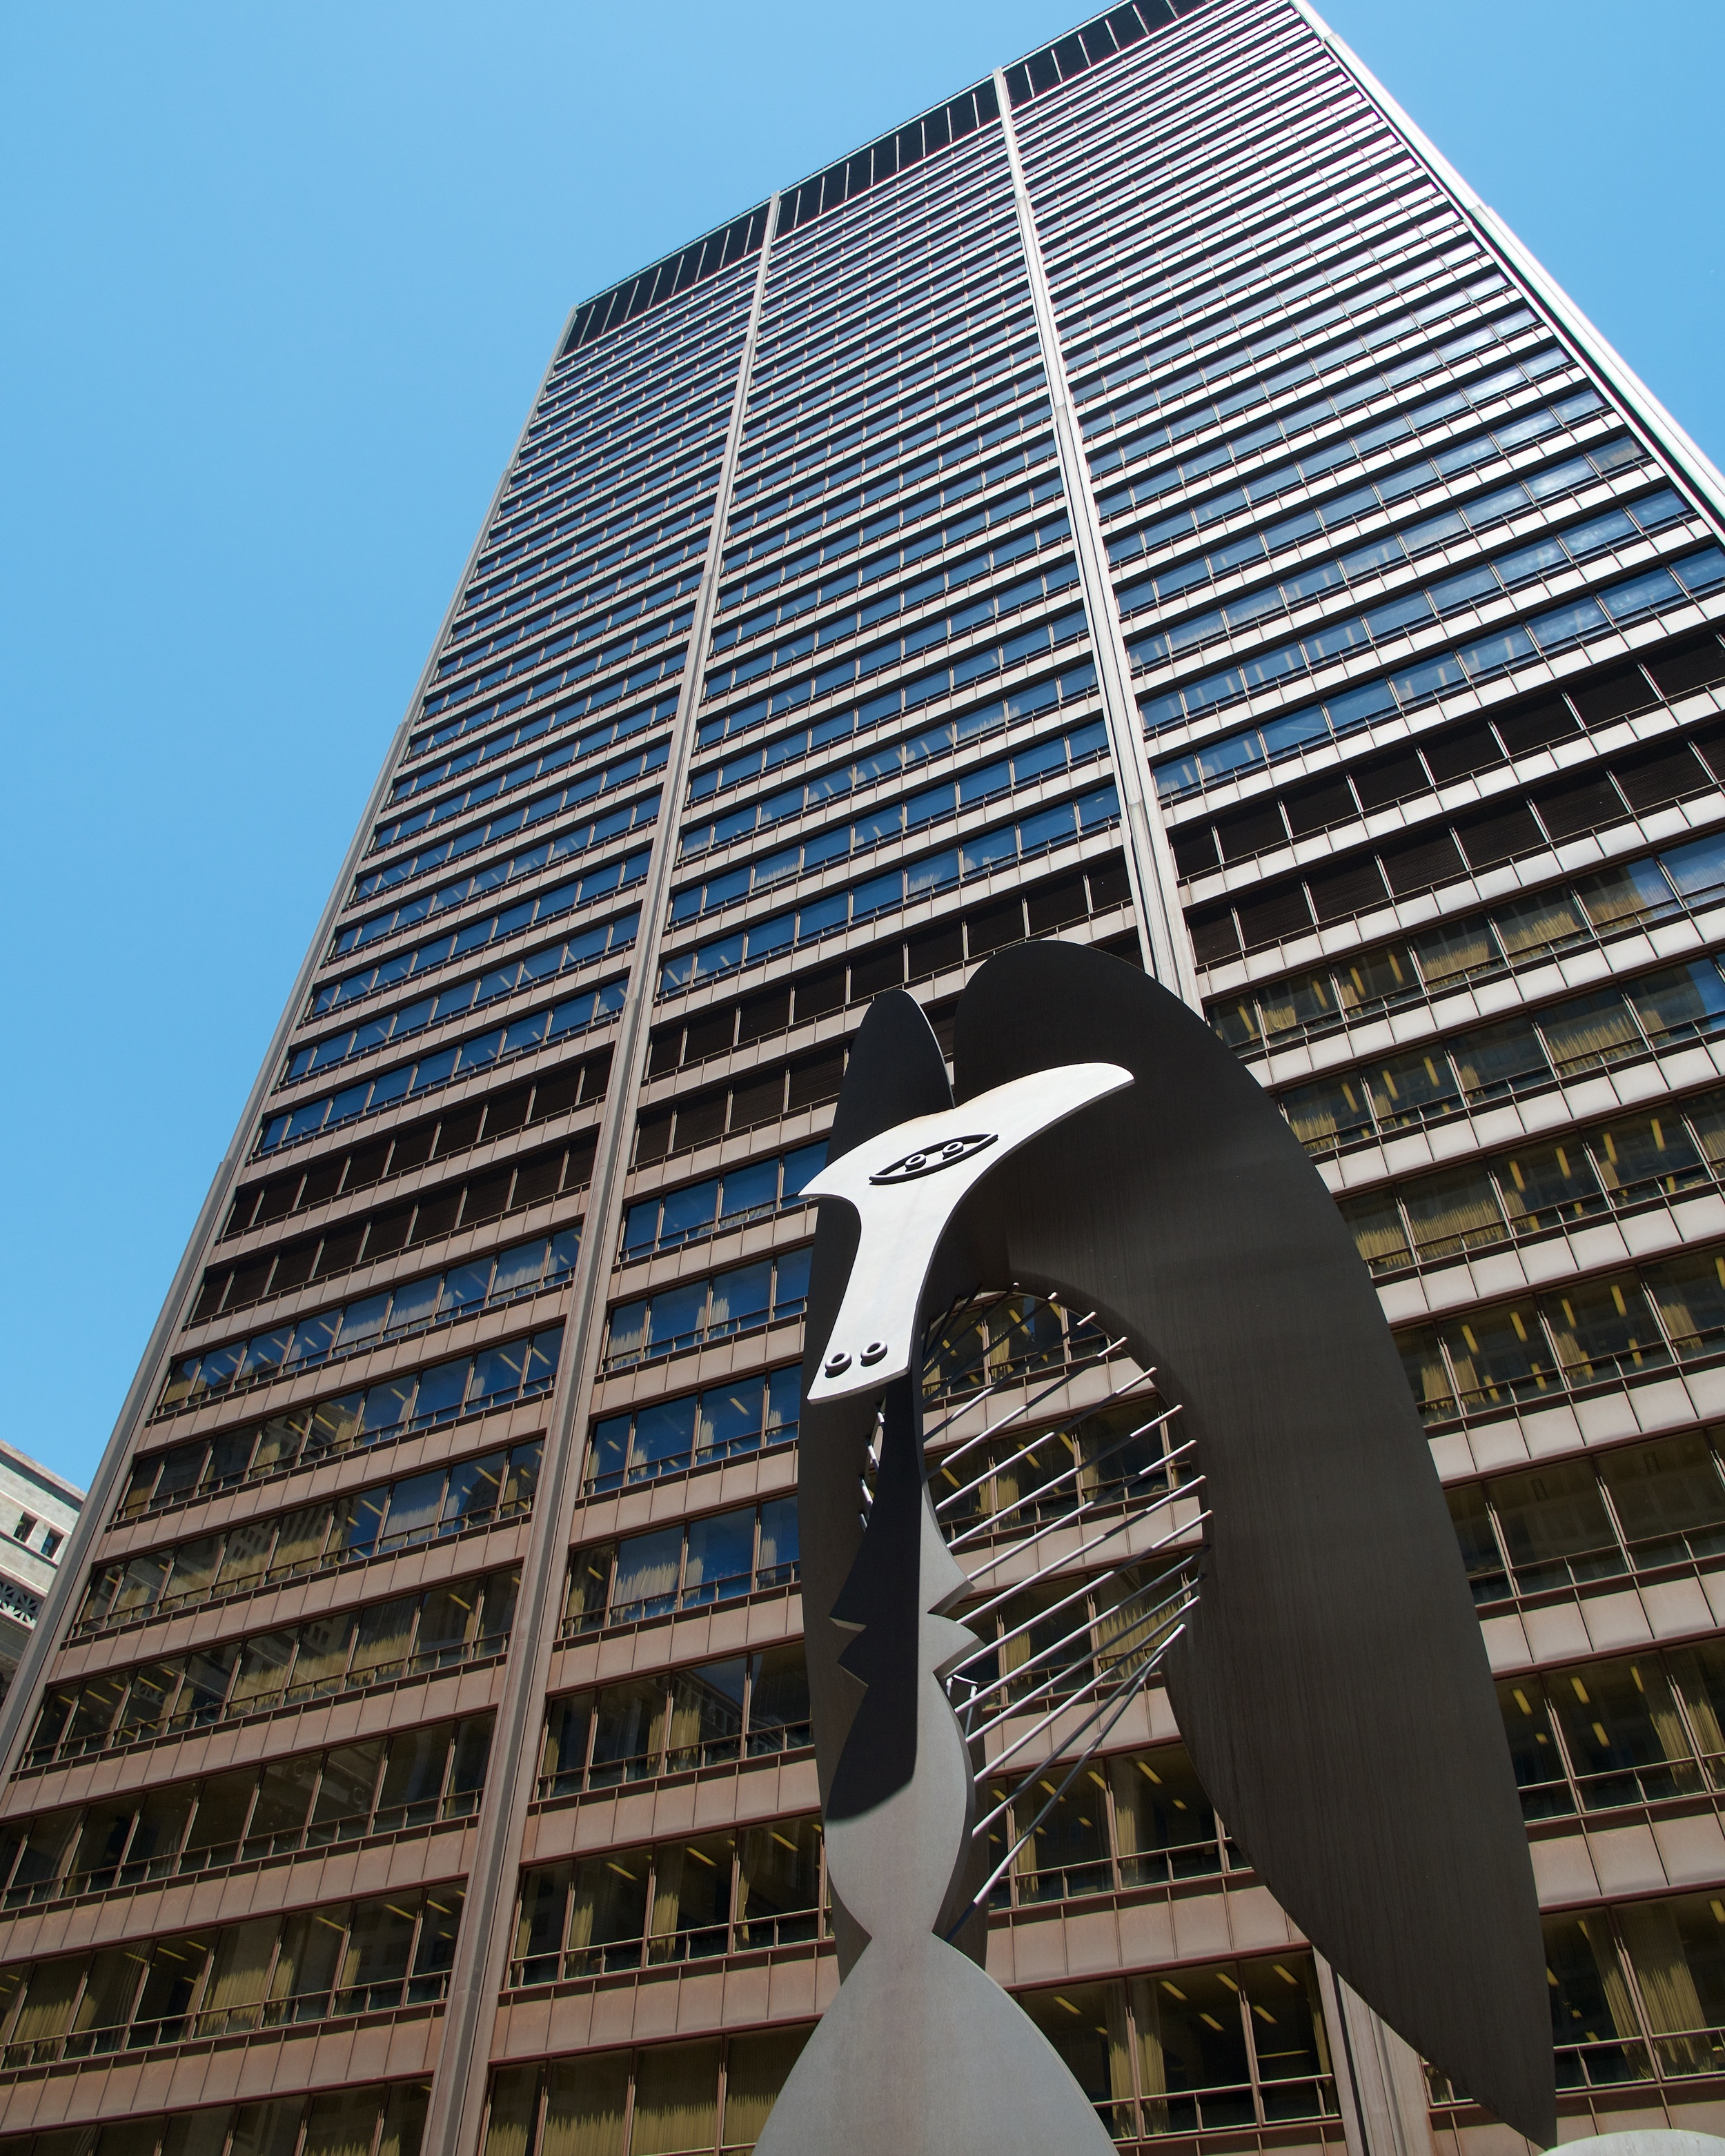 Untitled by Picasso in Daley Plaza